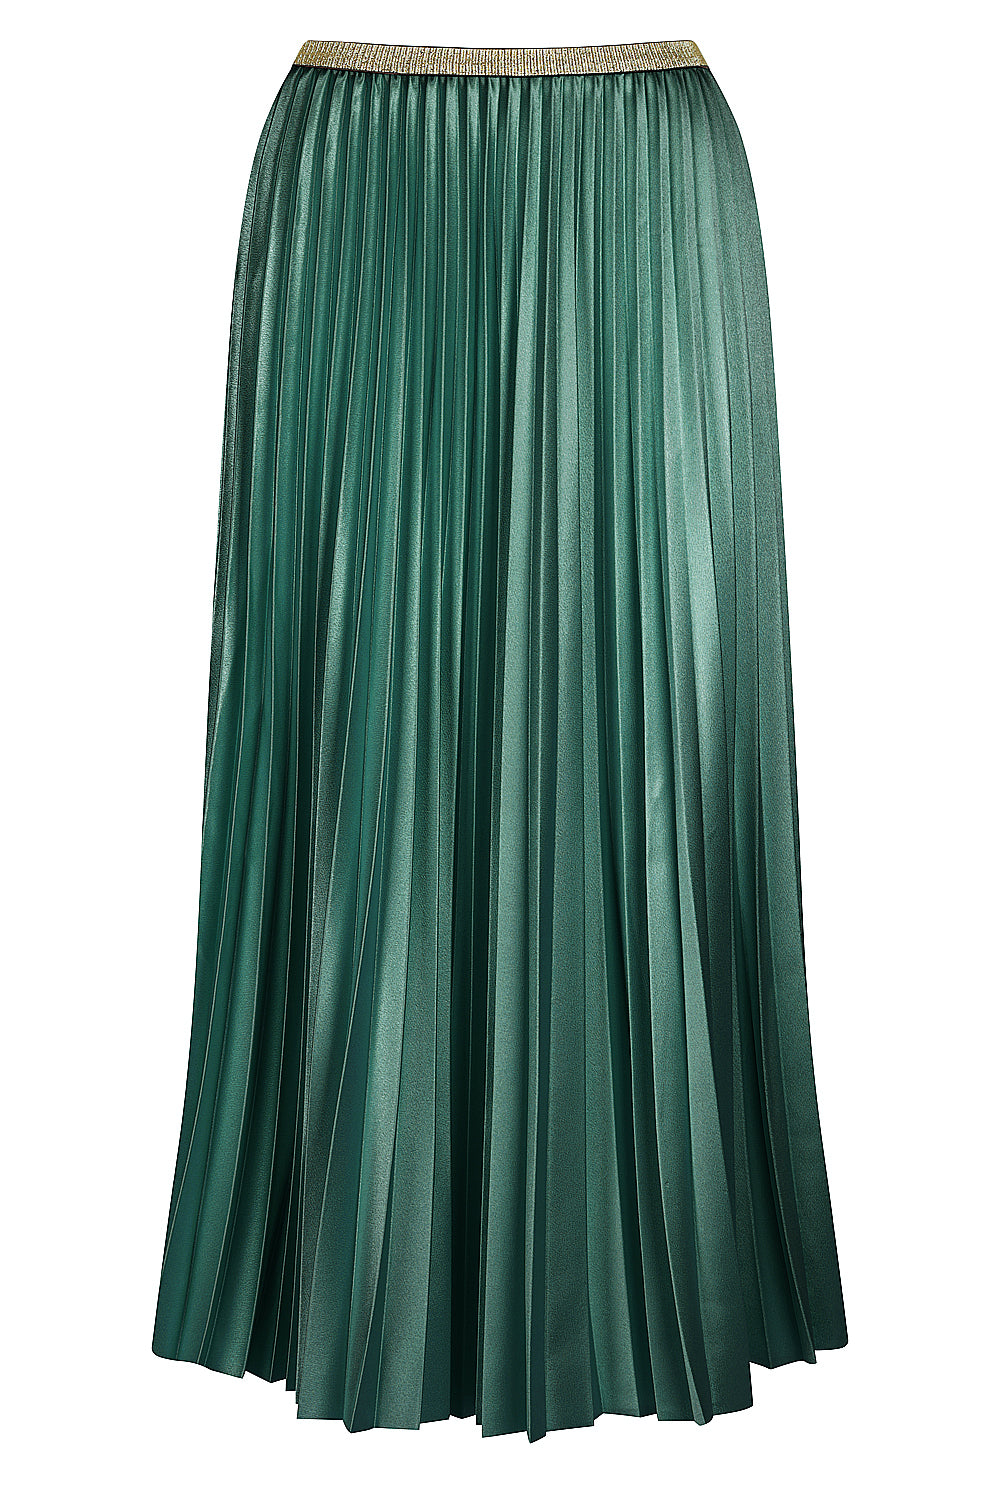 Posy Pleated Satin Skirt - peacock green